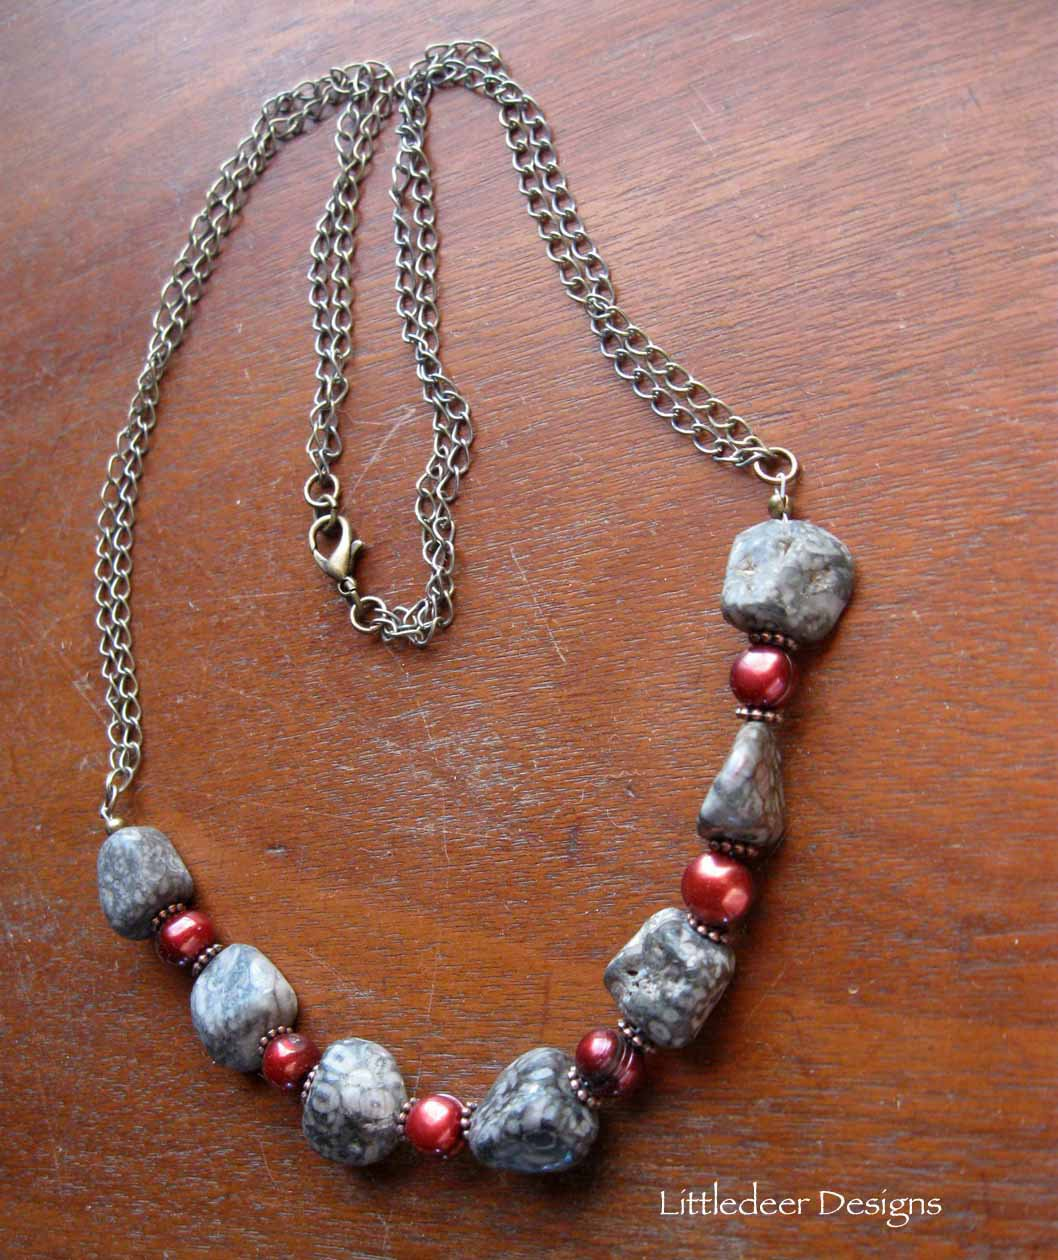 Handmade Fossil Agate with cranberry freshwater pearls necklace